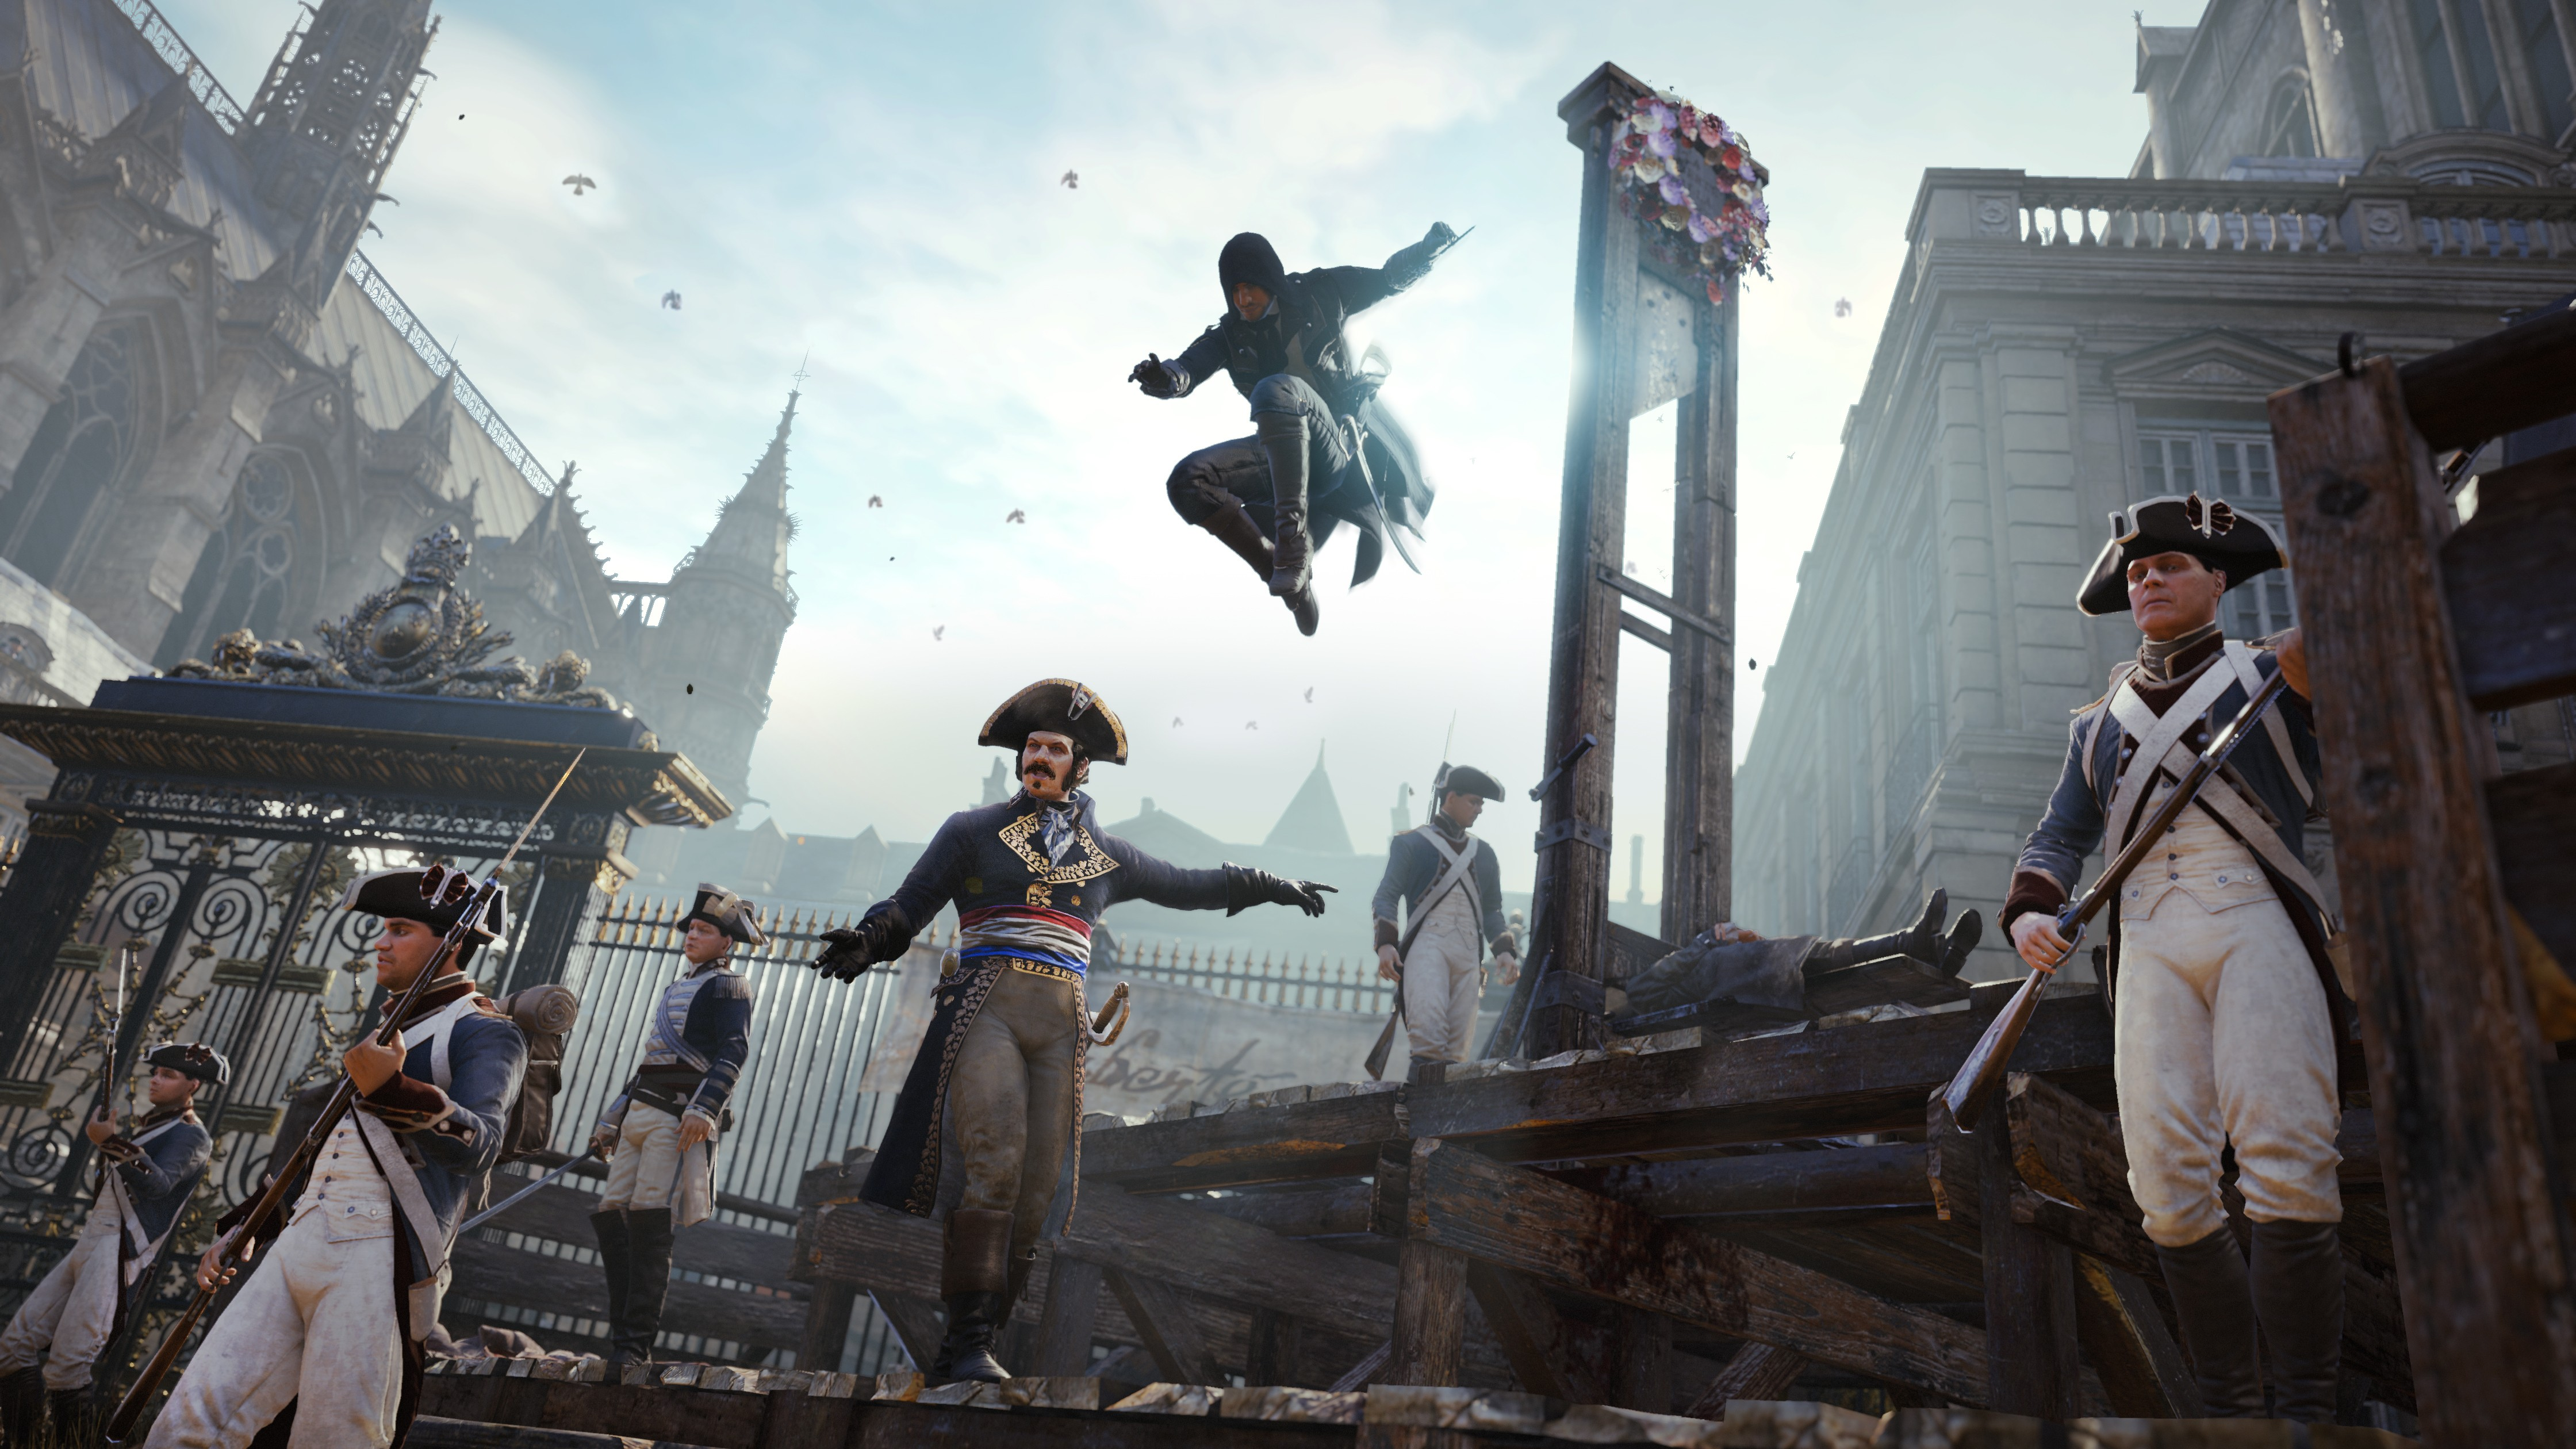 General 4480x2520 Assassin's Creed Assassin's Creed:  Unity video games